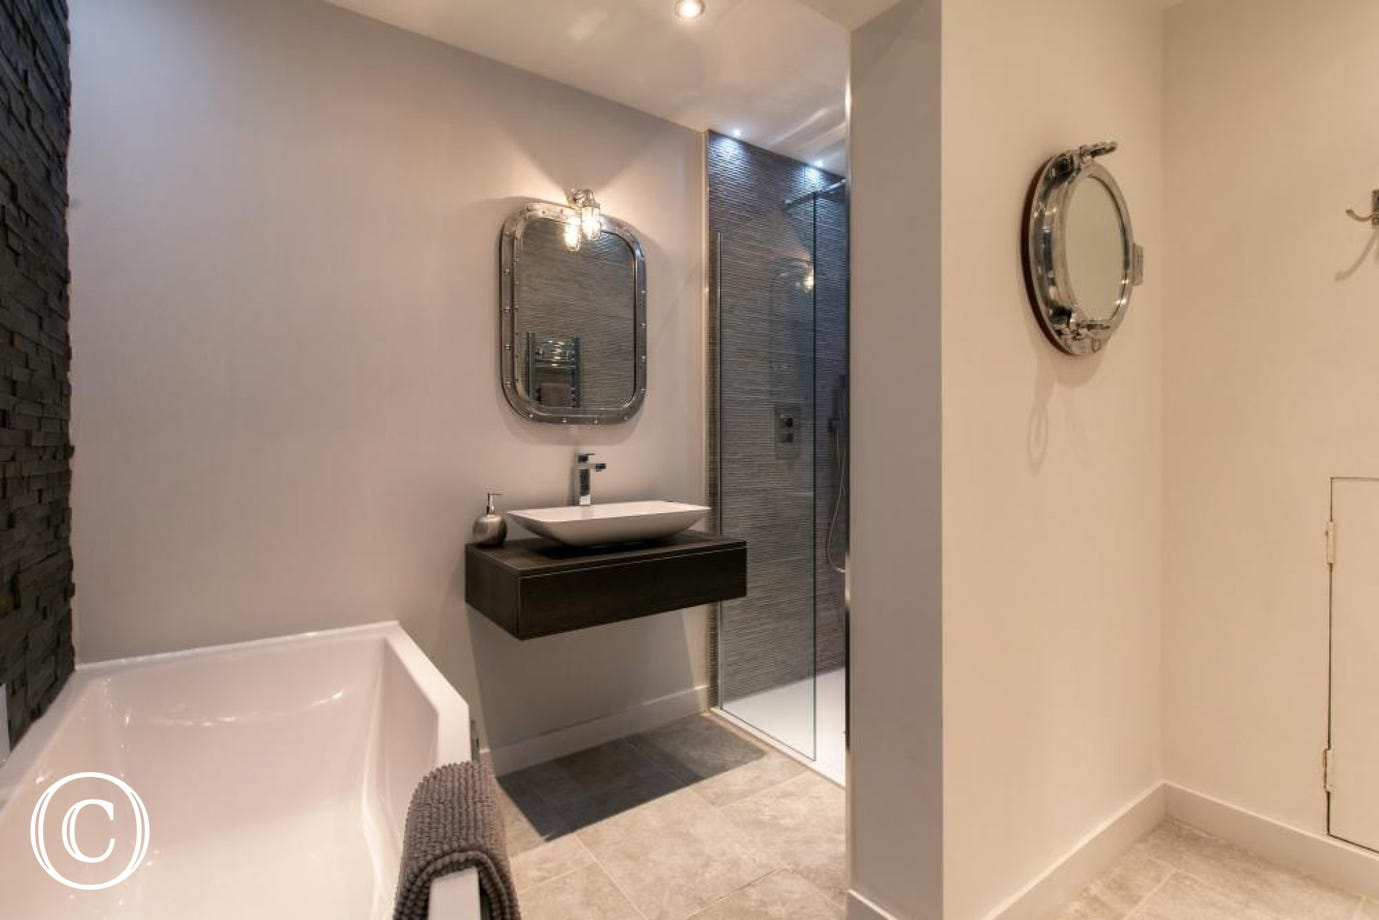 Luxury Bathroom in Luxury Couples Self-Catering Holiday Apartment in Torbay Coast